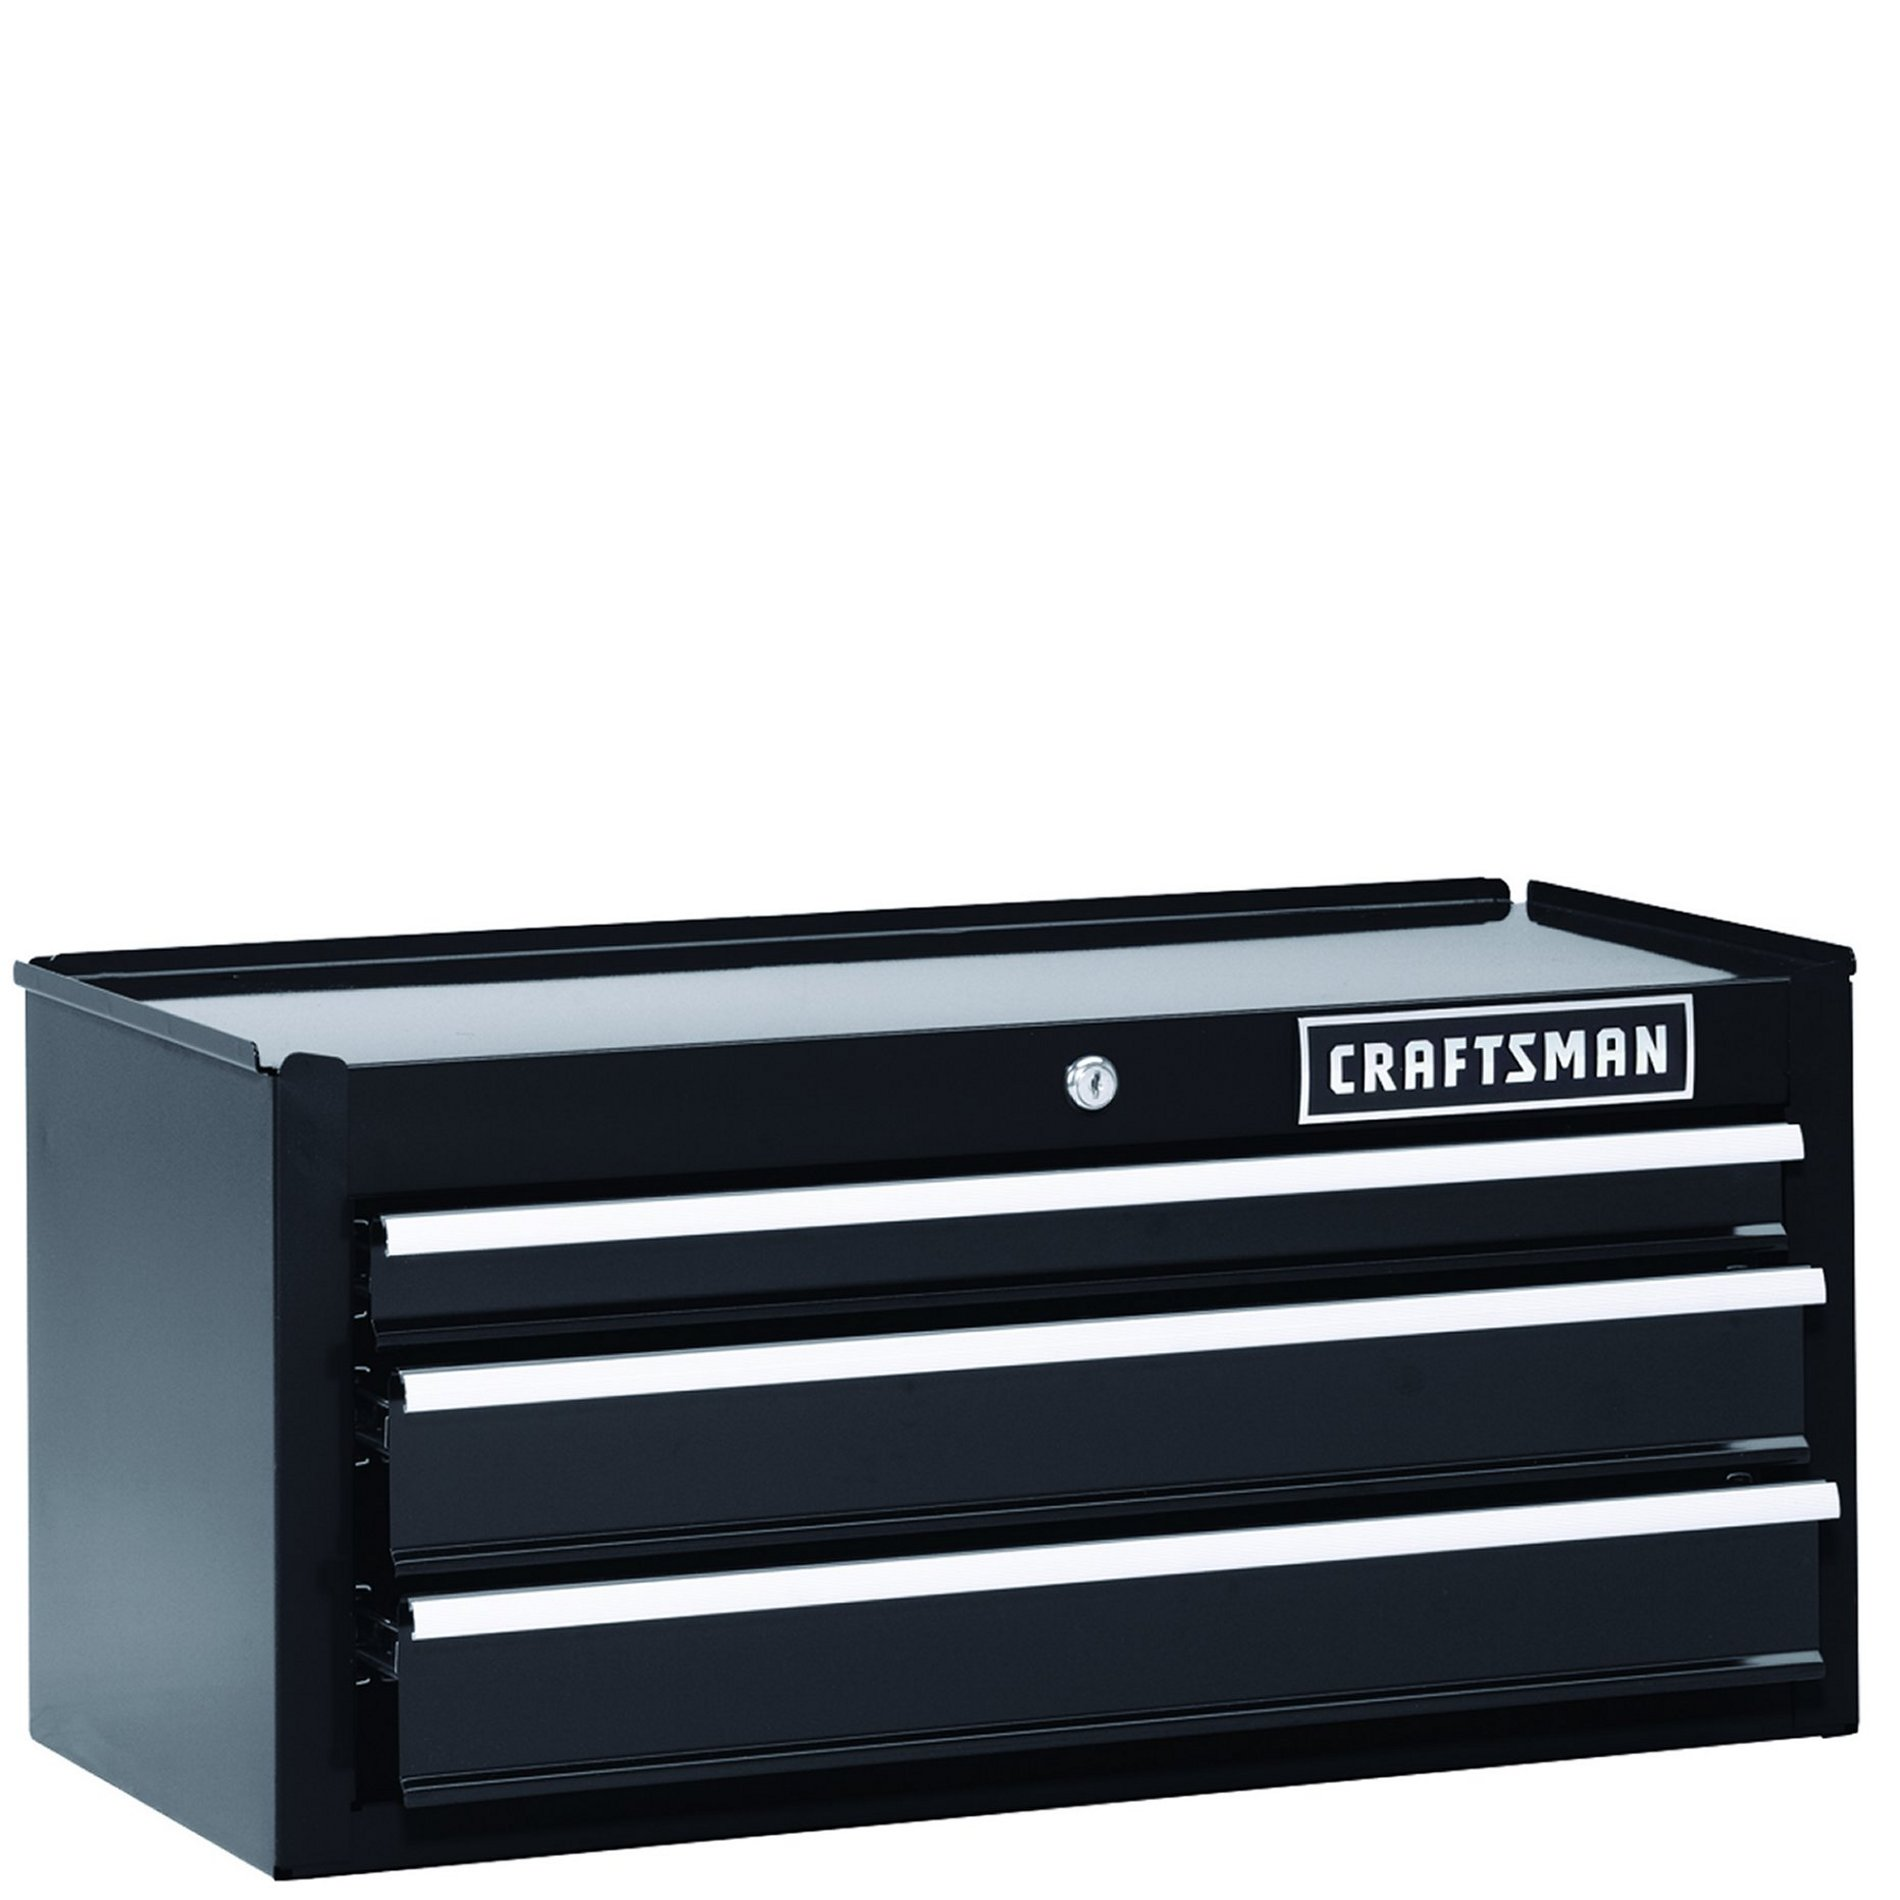 "Craftsman 26"""" 3-Drawer Heavy-Duty Middle Chest - Black"